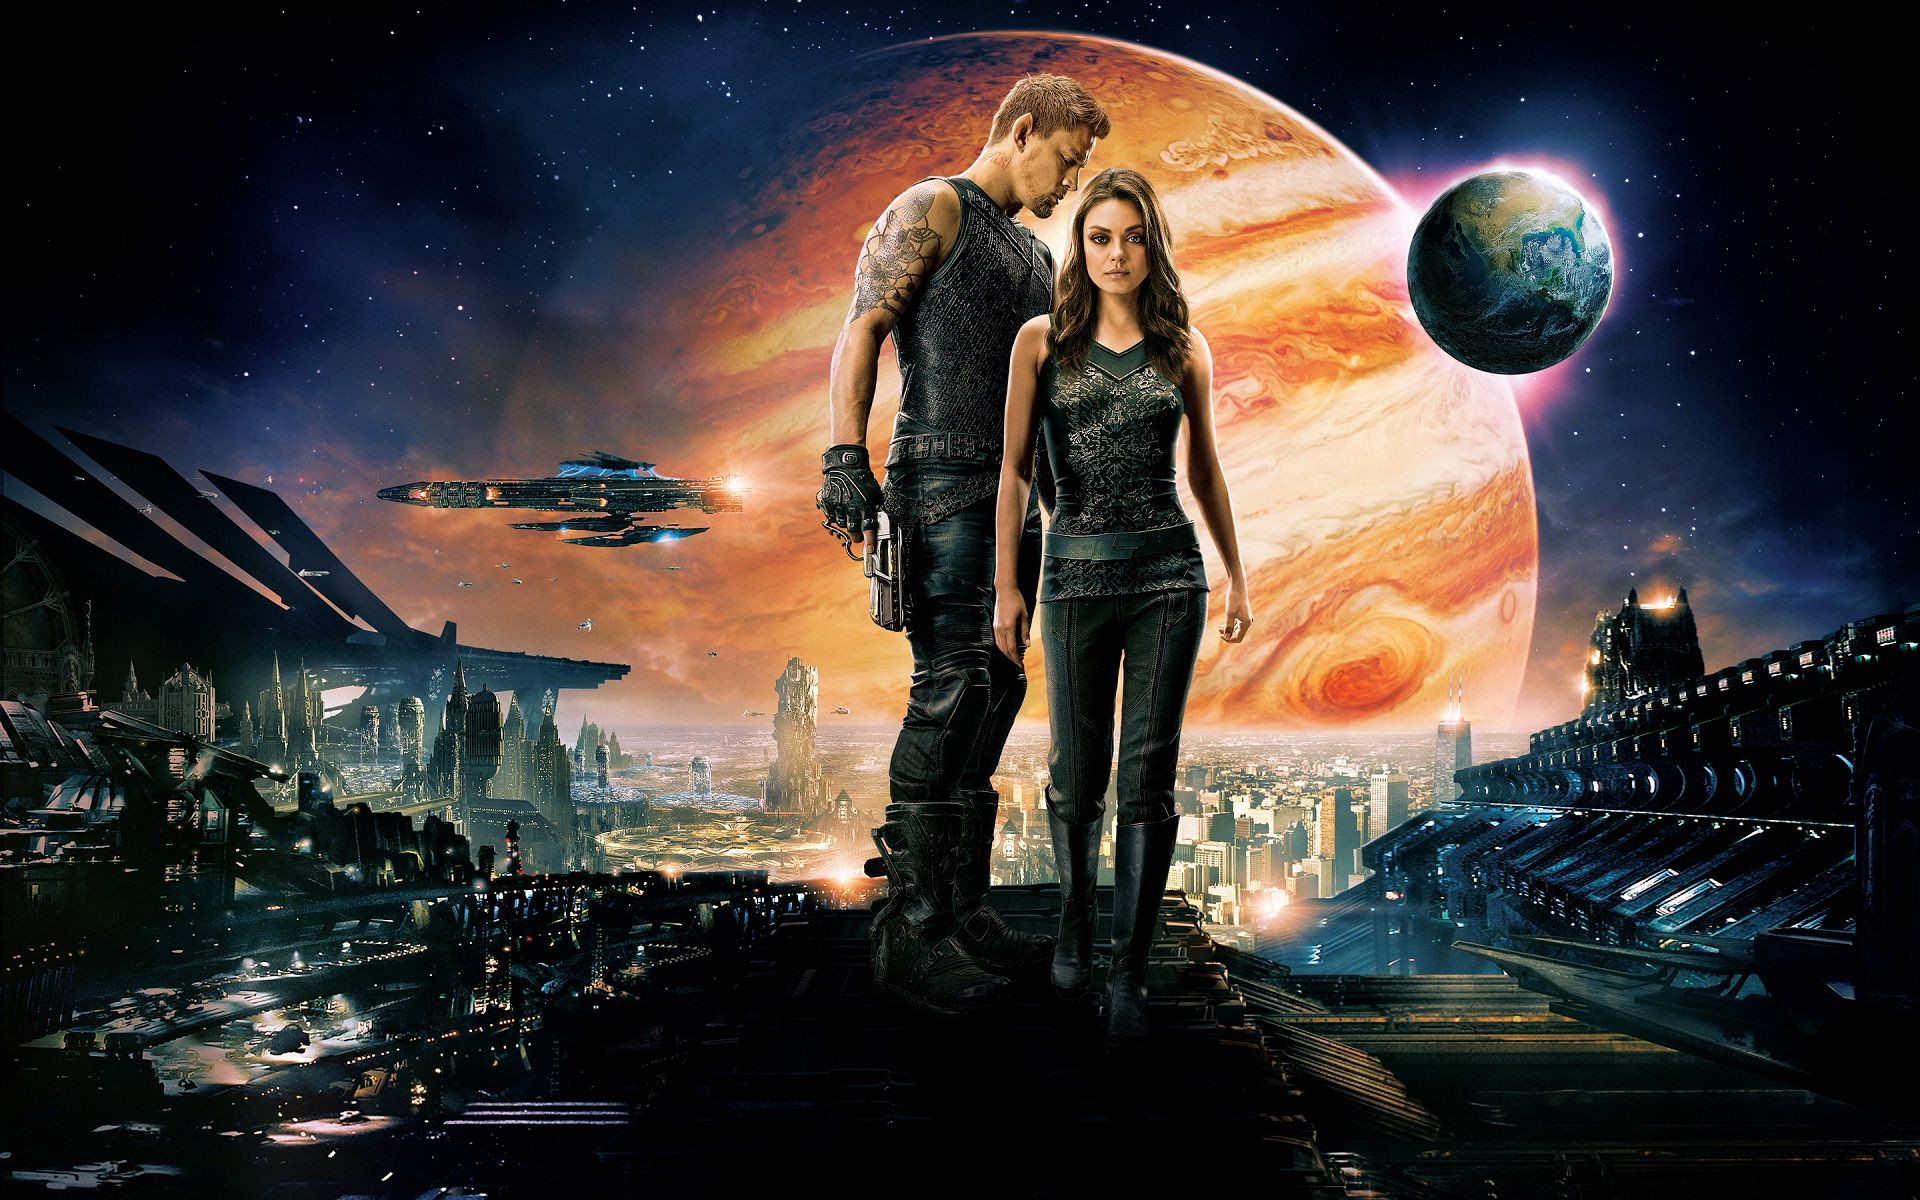 Hd Wallpapers Of Movies 1024 768 Hollywood Movie Wallpapers Hd 70 Wallpapers Adorable Wallpapers Jupiter Ascending Jupiter Ascending Movie Movie Wallpapers